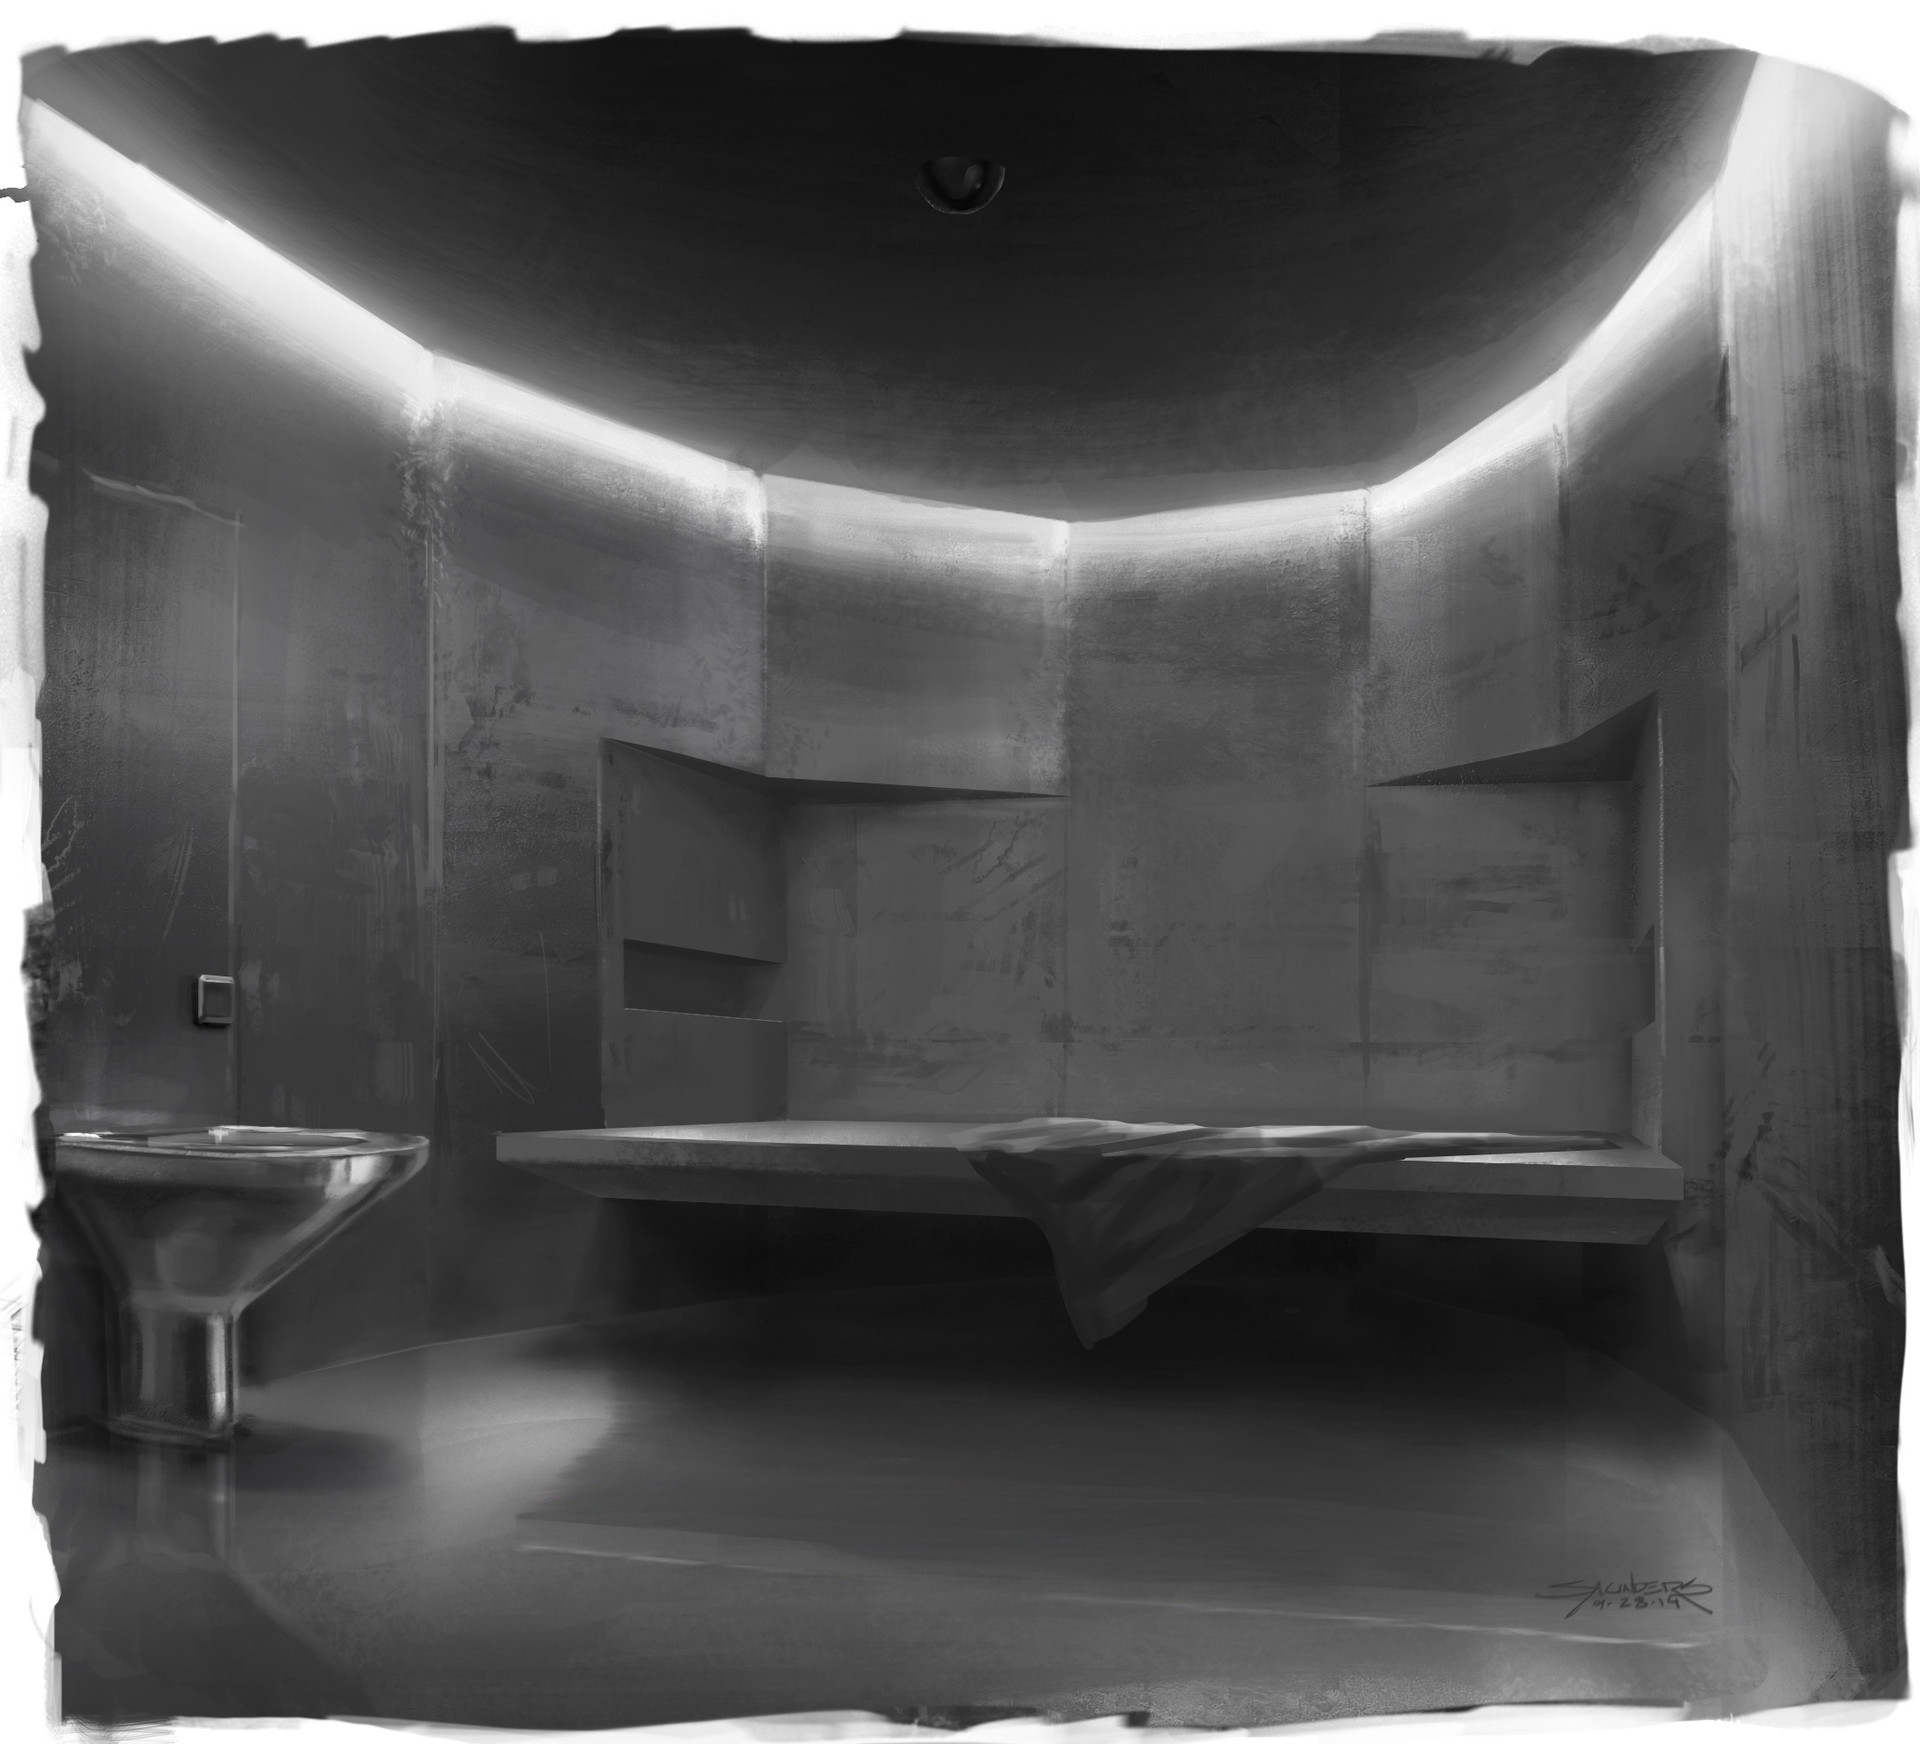 Thumbnail sketch of what a cell might look like. I design as much for lighting as for actual space, so these B&W paintings help me to focus on just the forms and how they will affect the lighting composition of the scene.